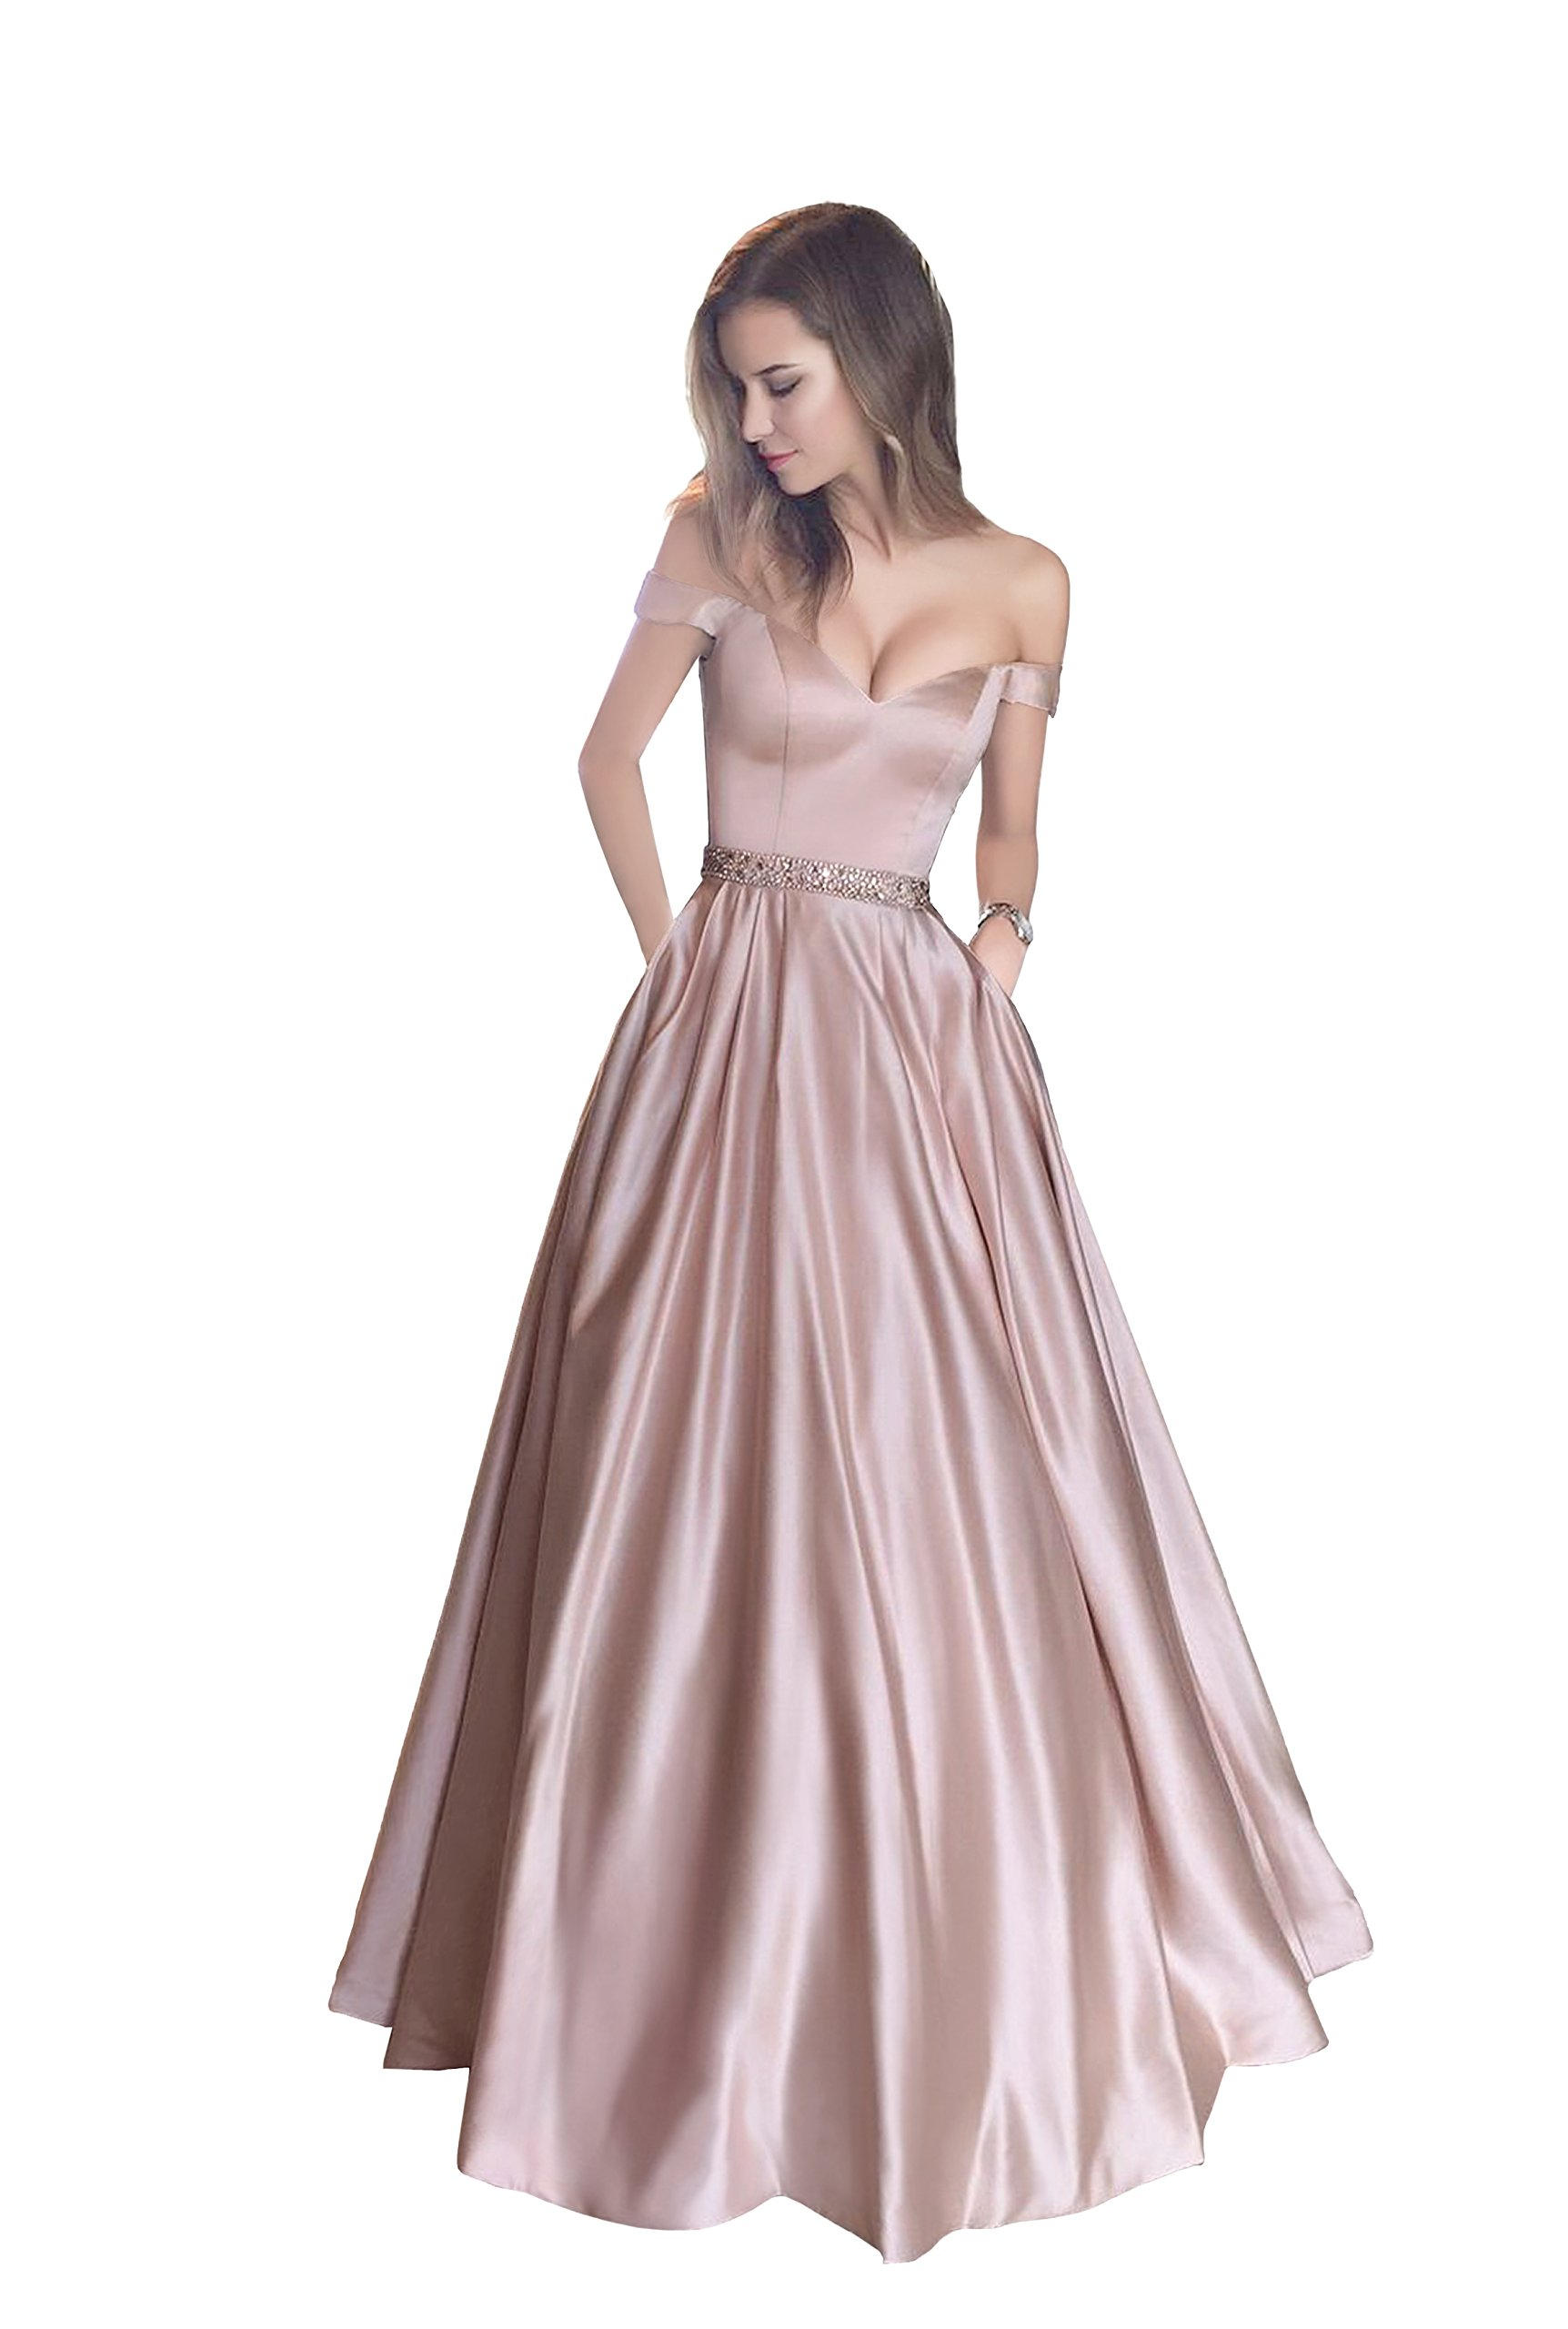 Prom Dresses - Tulle Crystal Prom Dress Tiered Formal Evening Dress Strap Ball Gown